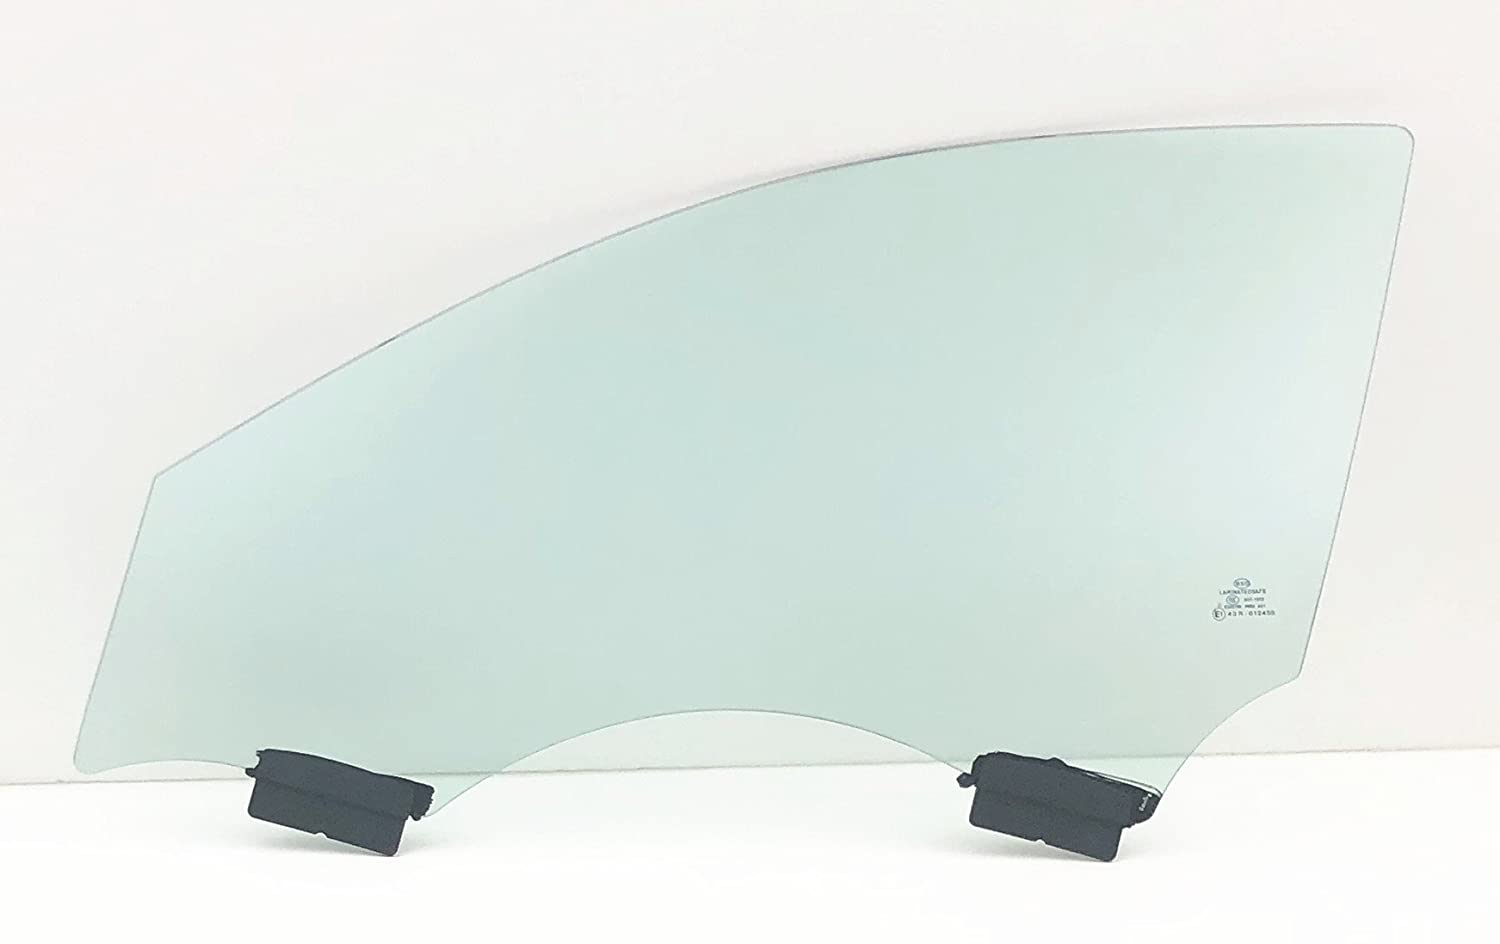 NAGD Compatible with 2001-2006 Hyundai Elantra Sedan and Hatchback Passenger Side Right Front Door Window Glass